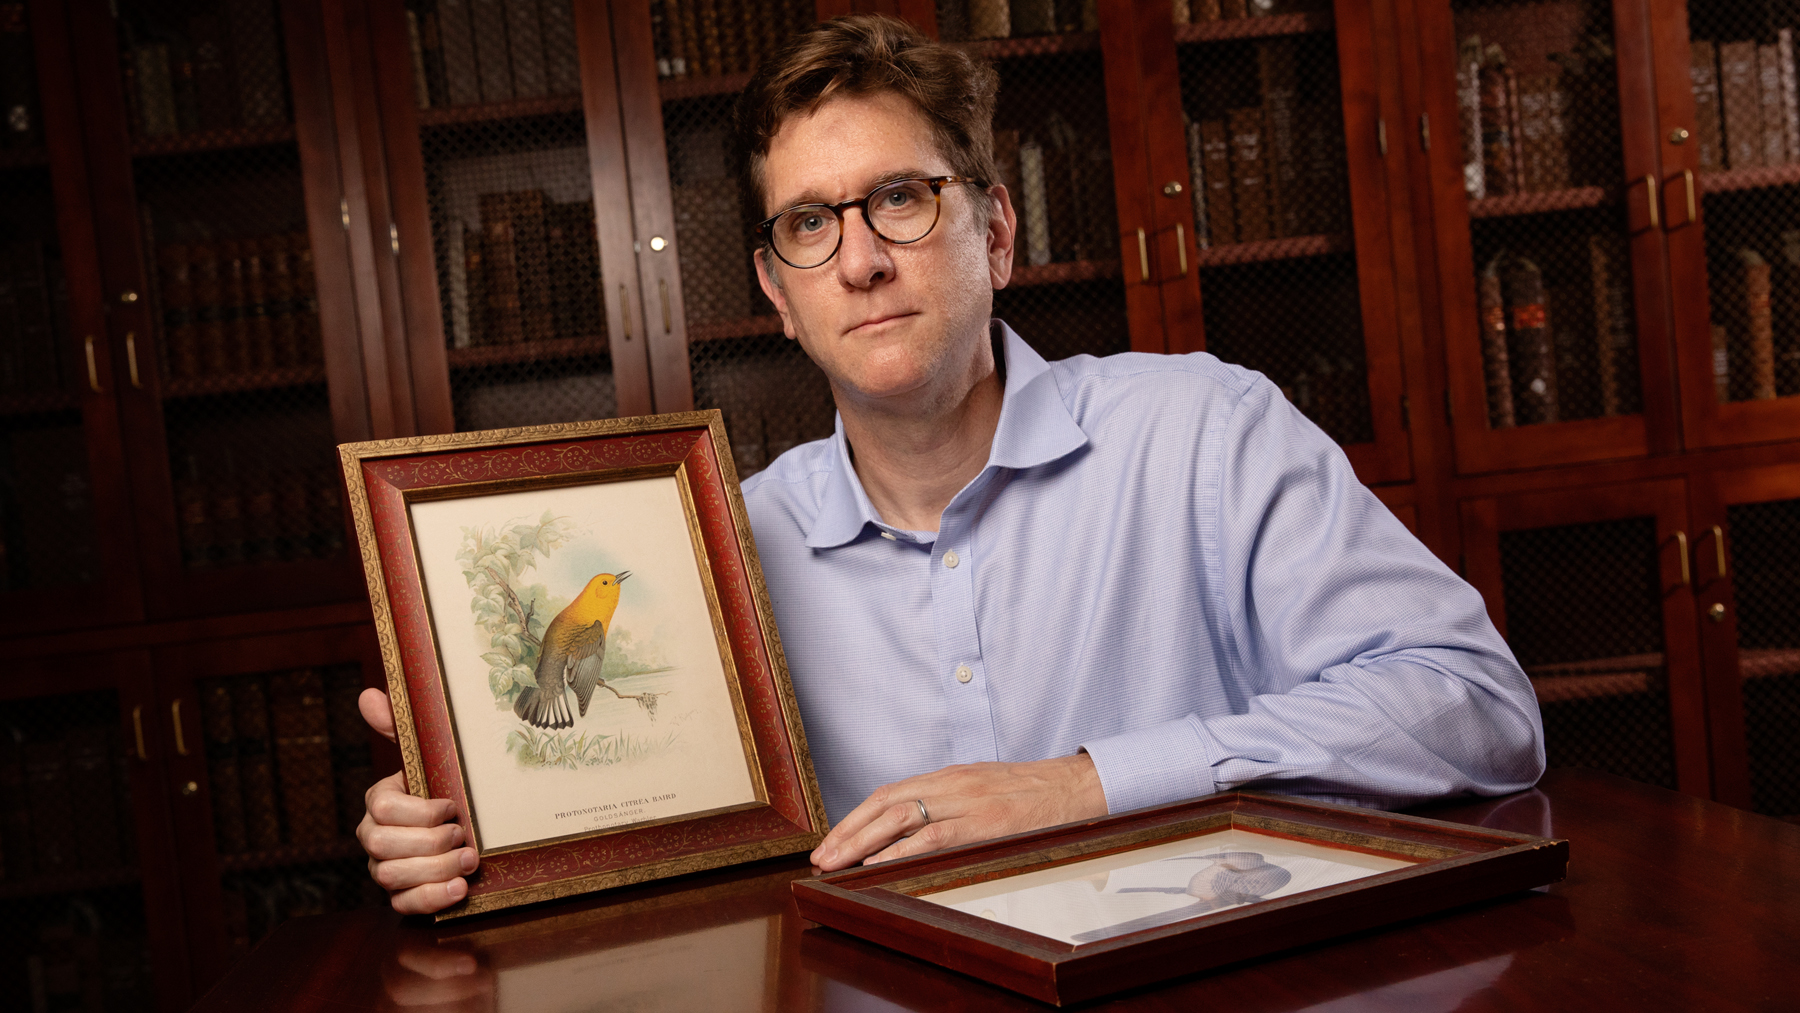 Travis McDade, the curator of law rare books at the University of Illinois College of Law and an expert on rare-book crimes